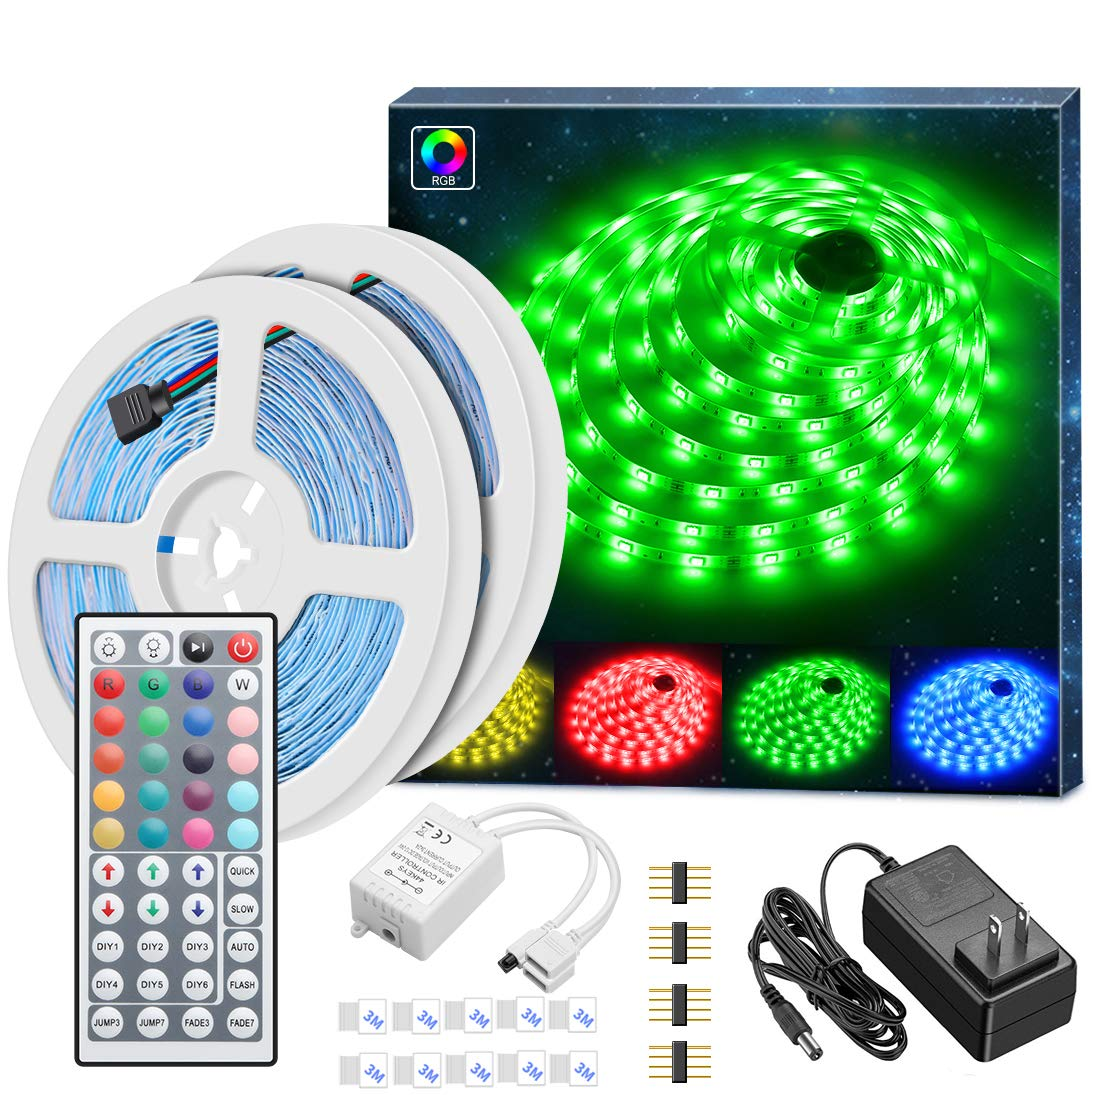 LED Strip Lights Kit, Govee Non-waterproof 2x5m(32.8Ft in Total) 5050 RGB 300led Strips Lighting with 12V 4A Power Supply + 44 Key IR Remote Ideal for Home,Kitchen Lighting,Christmas Decorations